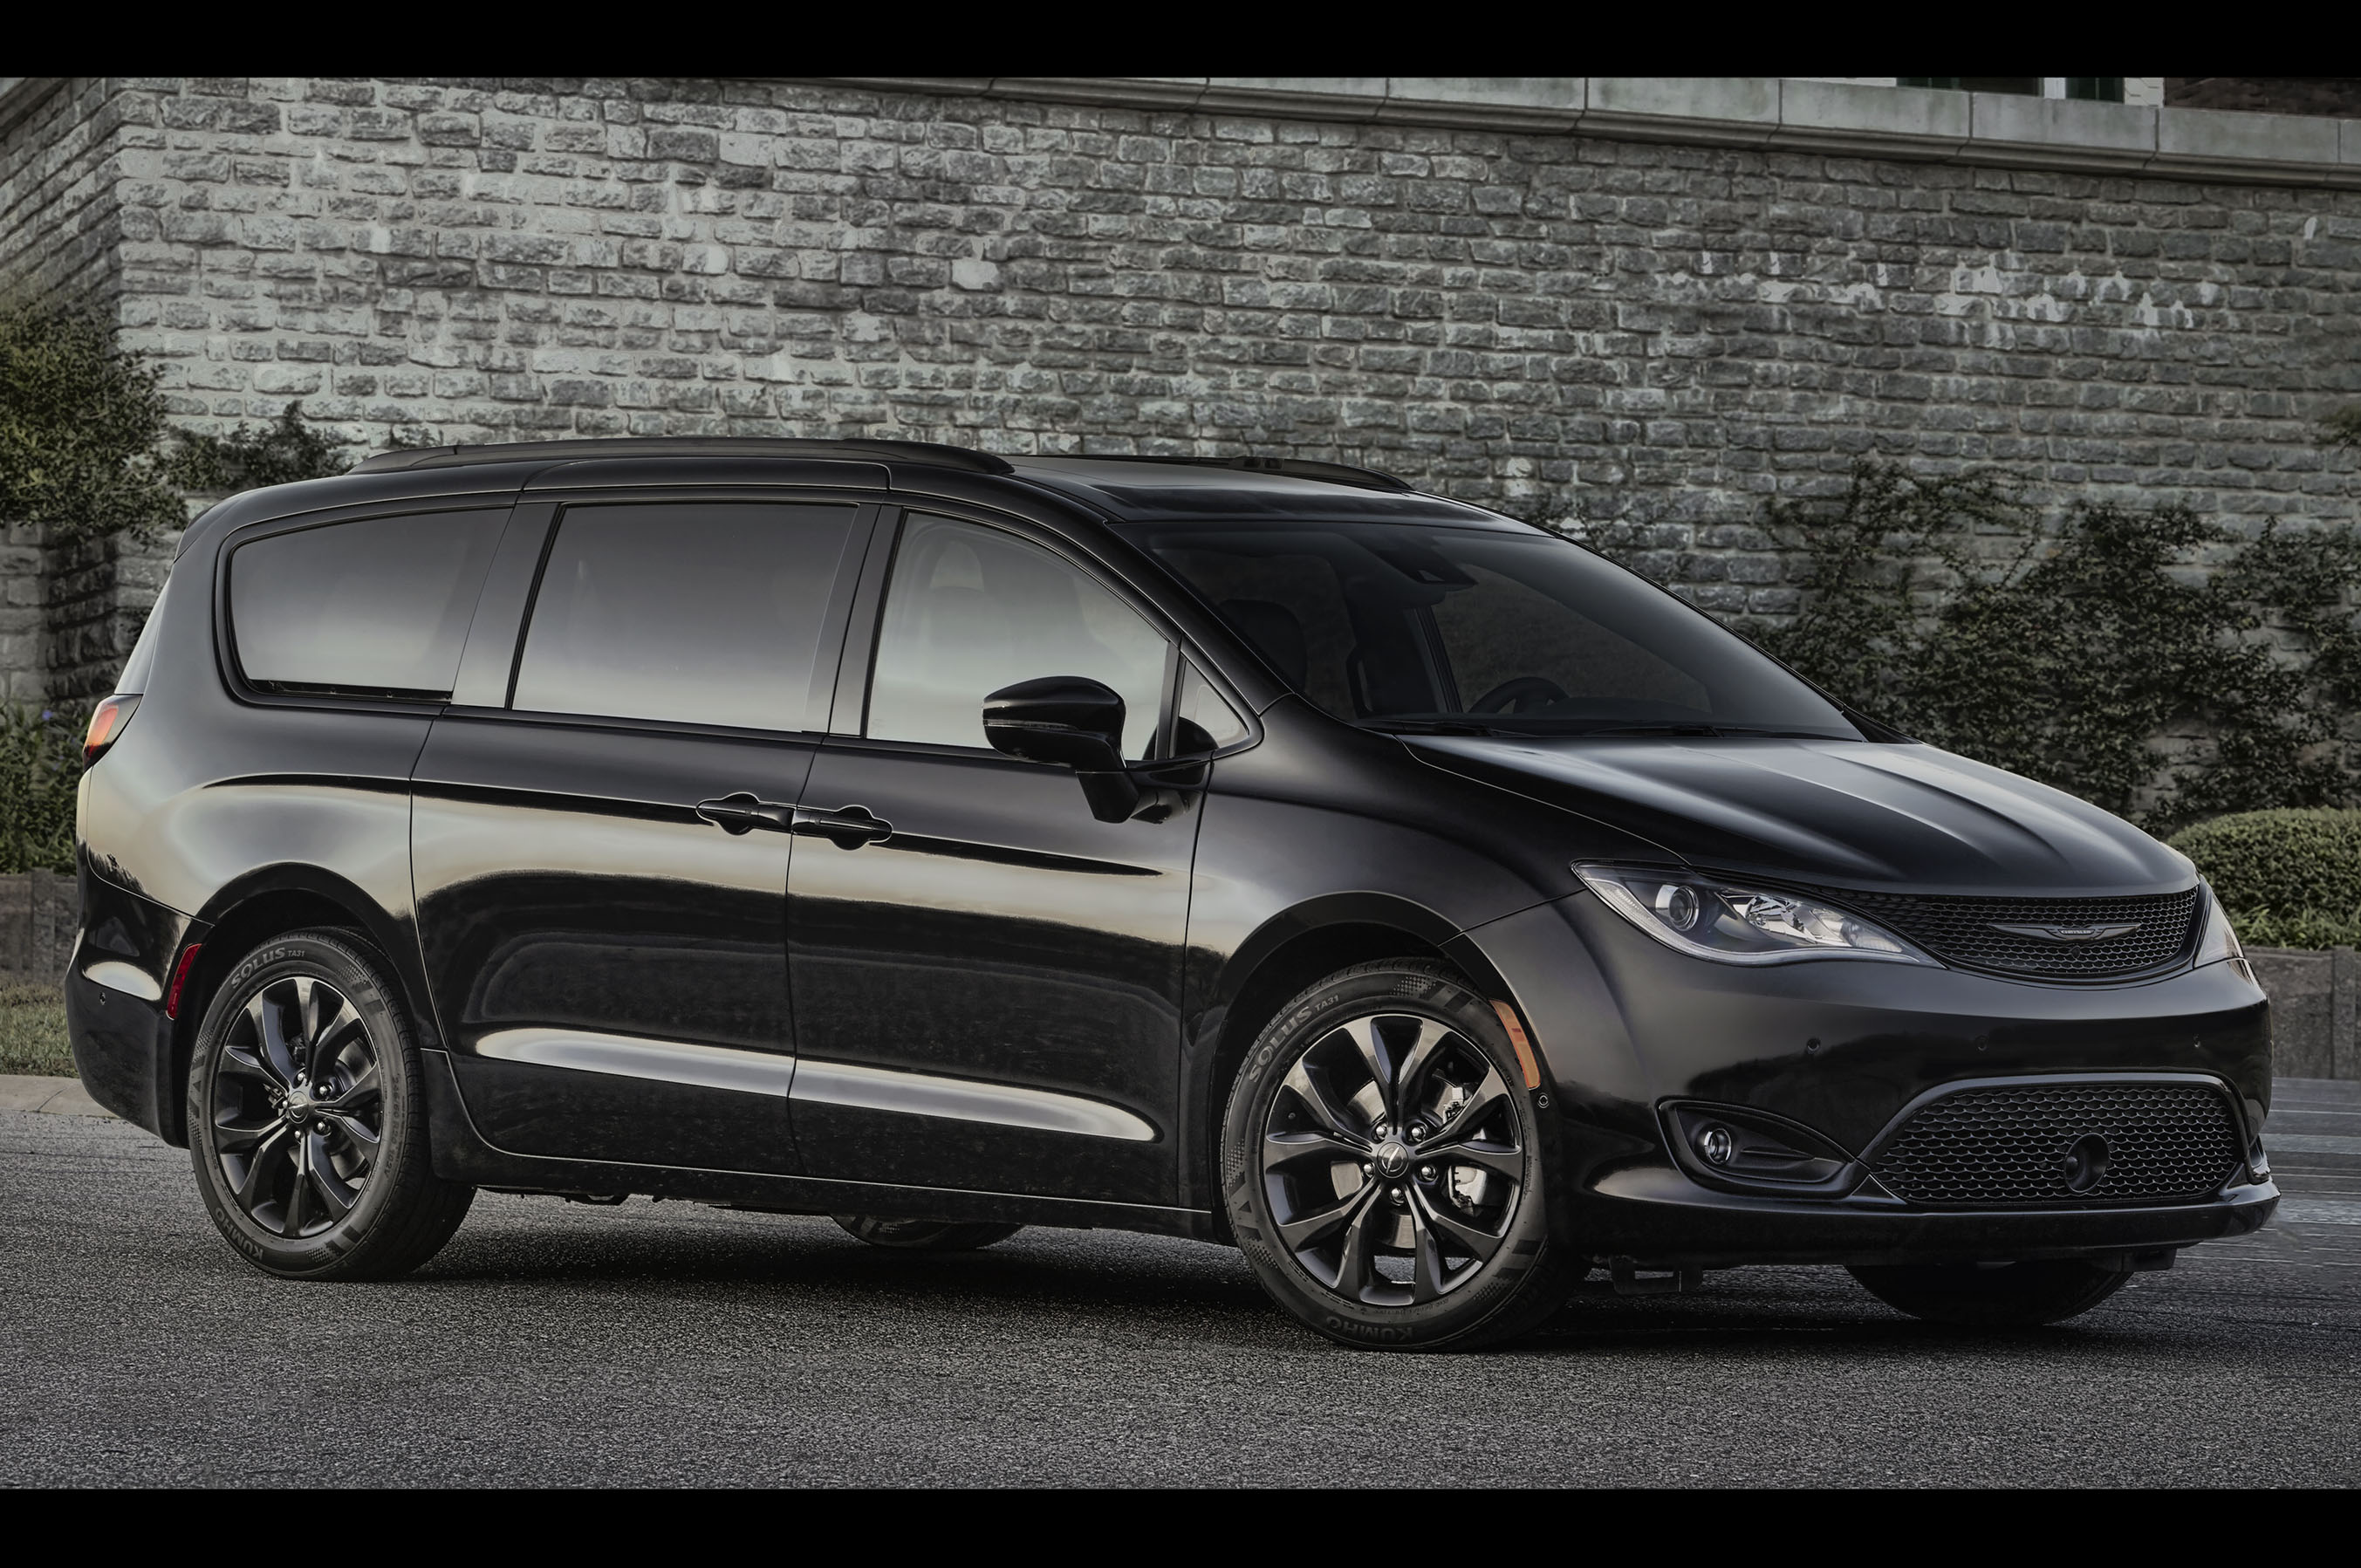 2018 chrysler pacifica adds s appearance package. Black Bedroom Furniture Sets. Home Design Ideas